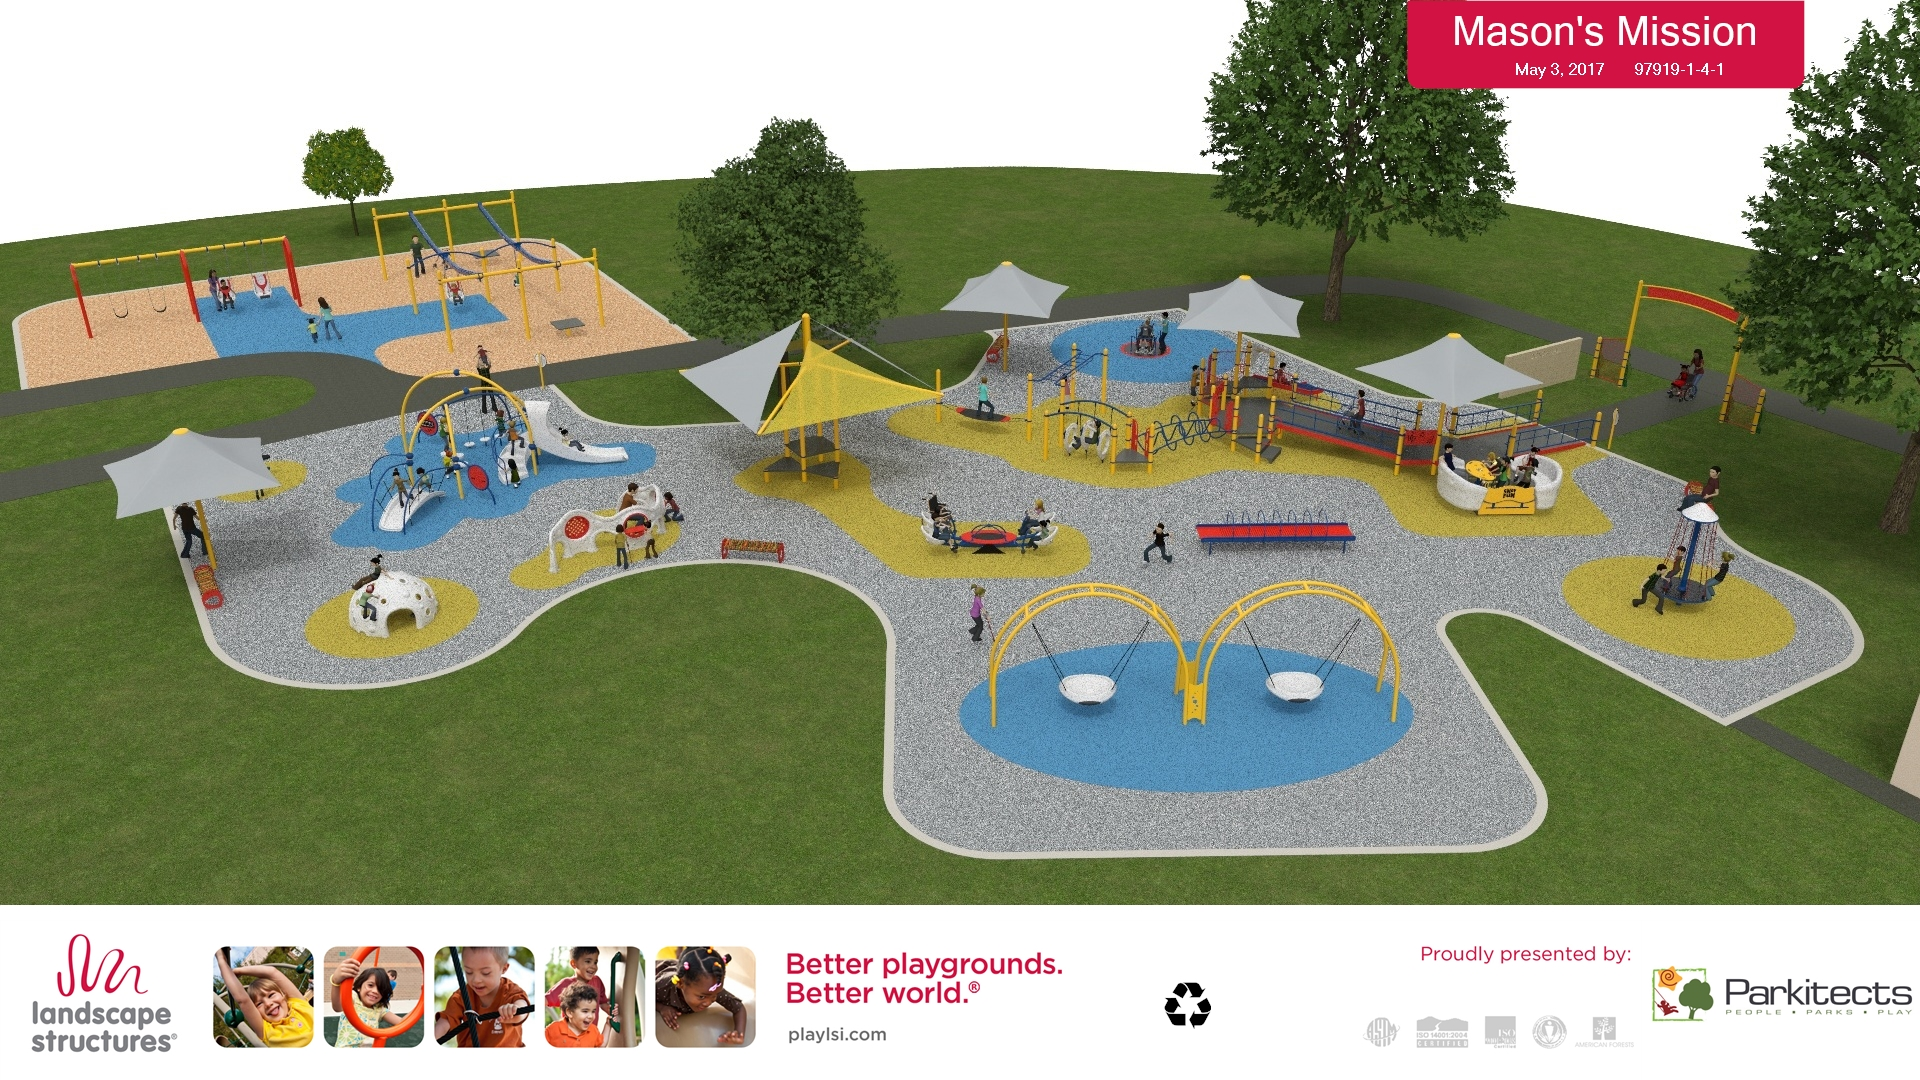 And lets not forget the very first of it's kind and our pride and joy, Mason's Mission Pendleton Park Playground